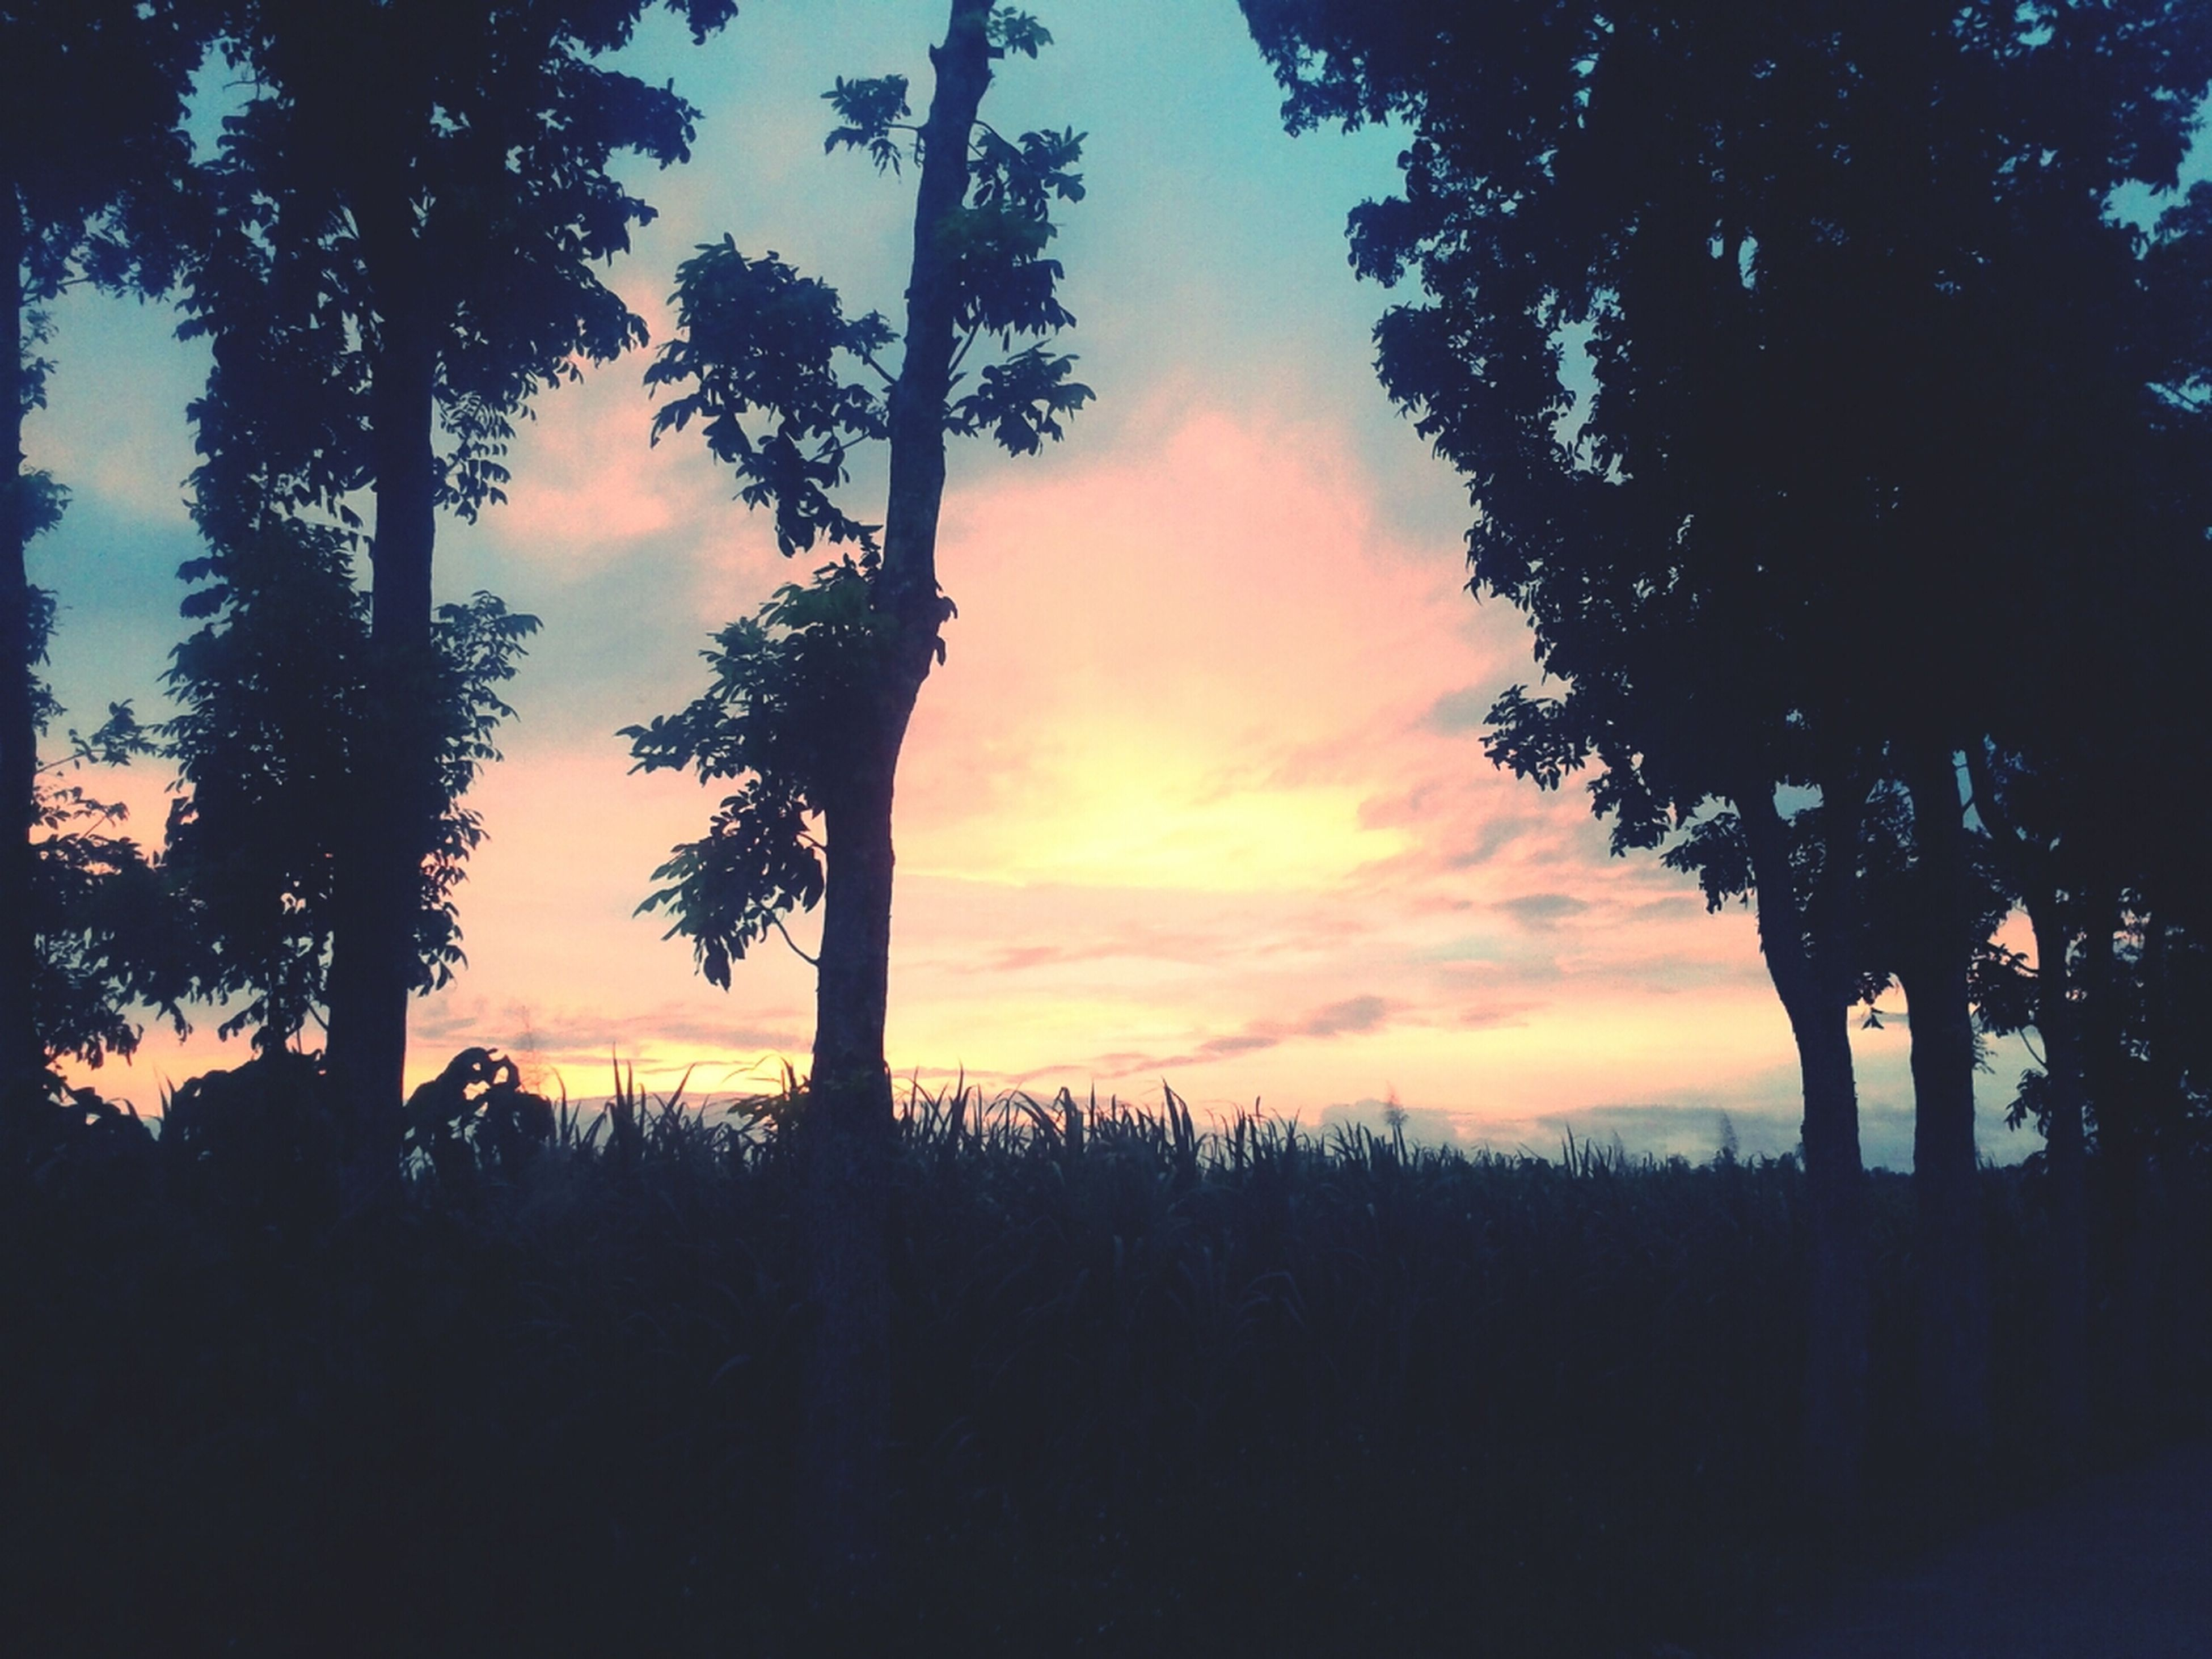 sunset, silhouette, tree, tranquility, tranquil scene, scenics, beauty in nature, sky, orange color, nature, idyllic, cloud - sky, tree trunk, palm tree, landscape, growth, non-urban scene, dramatic sky, outdoors, dusk